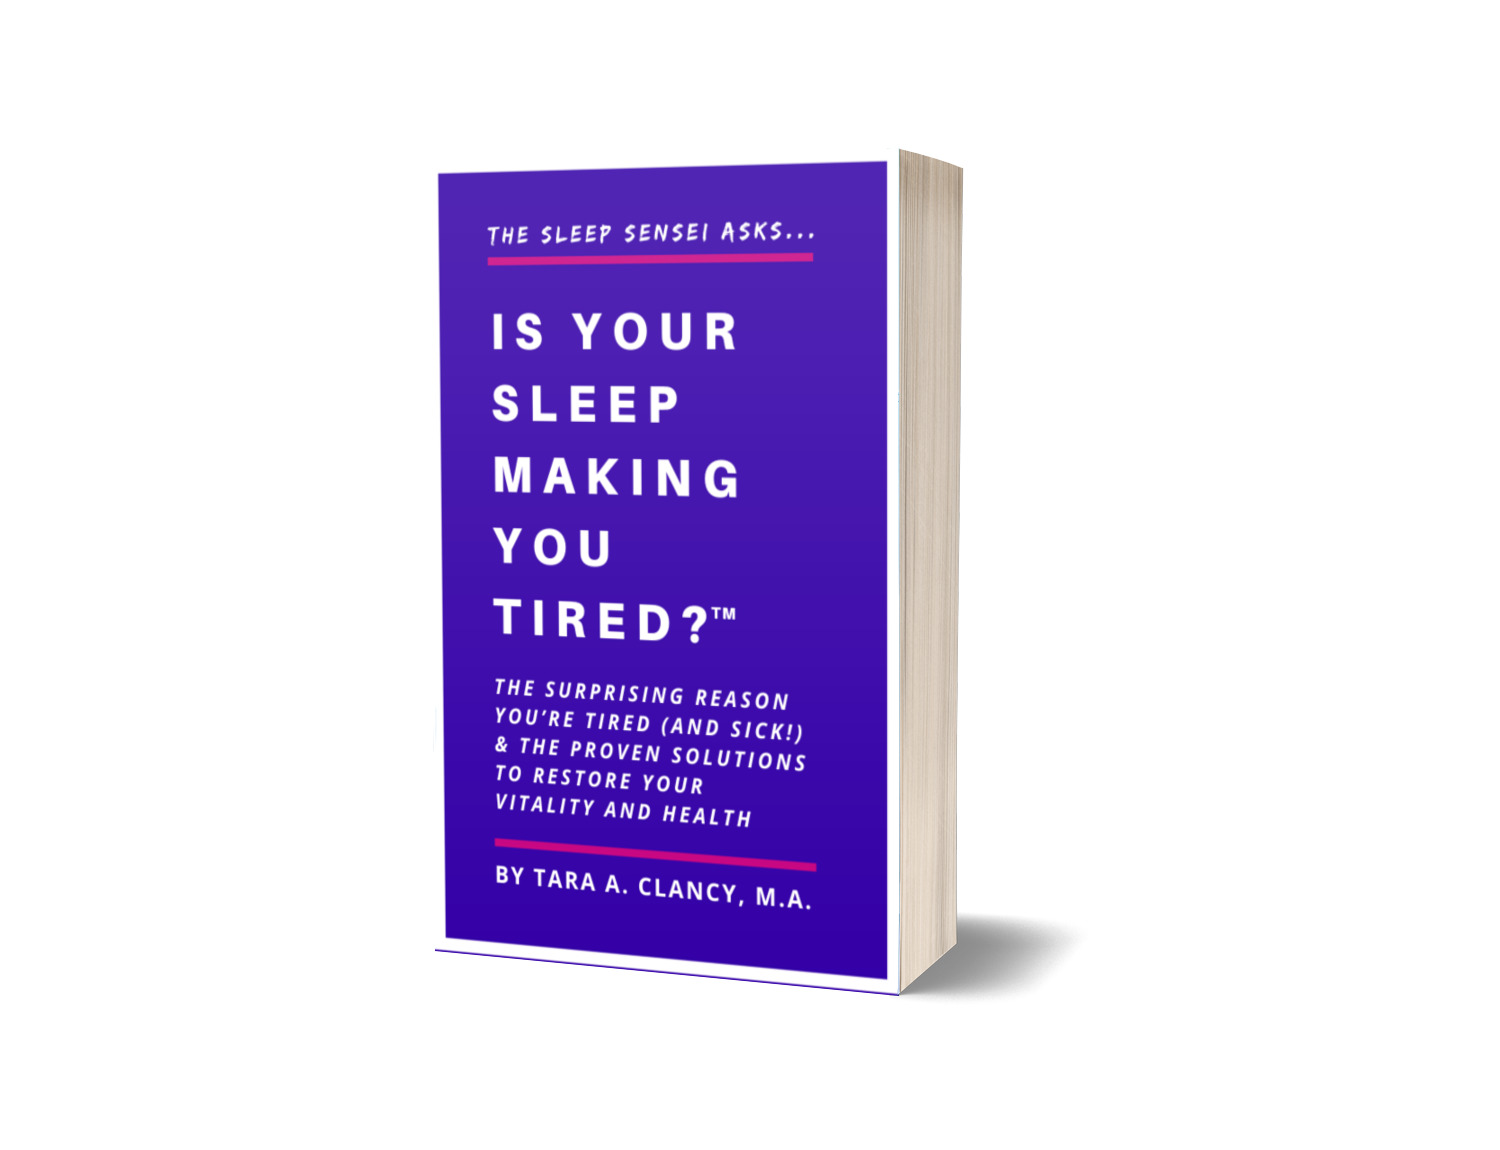 SLEEP PROBLEMS SOLUTIONS SLEEP SENSEI IS YOUR SLEEP MAKING YOU TIRED